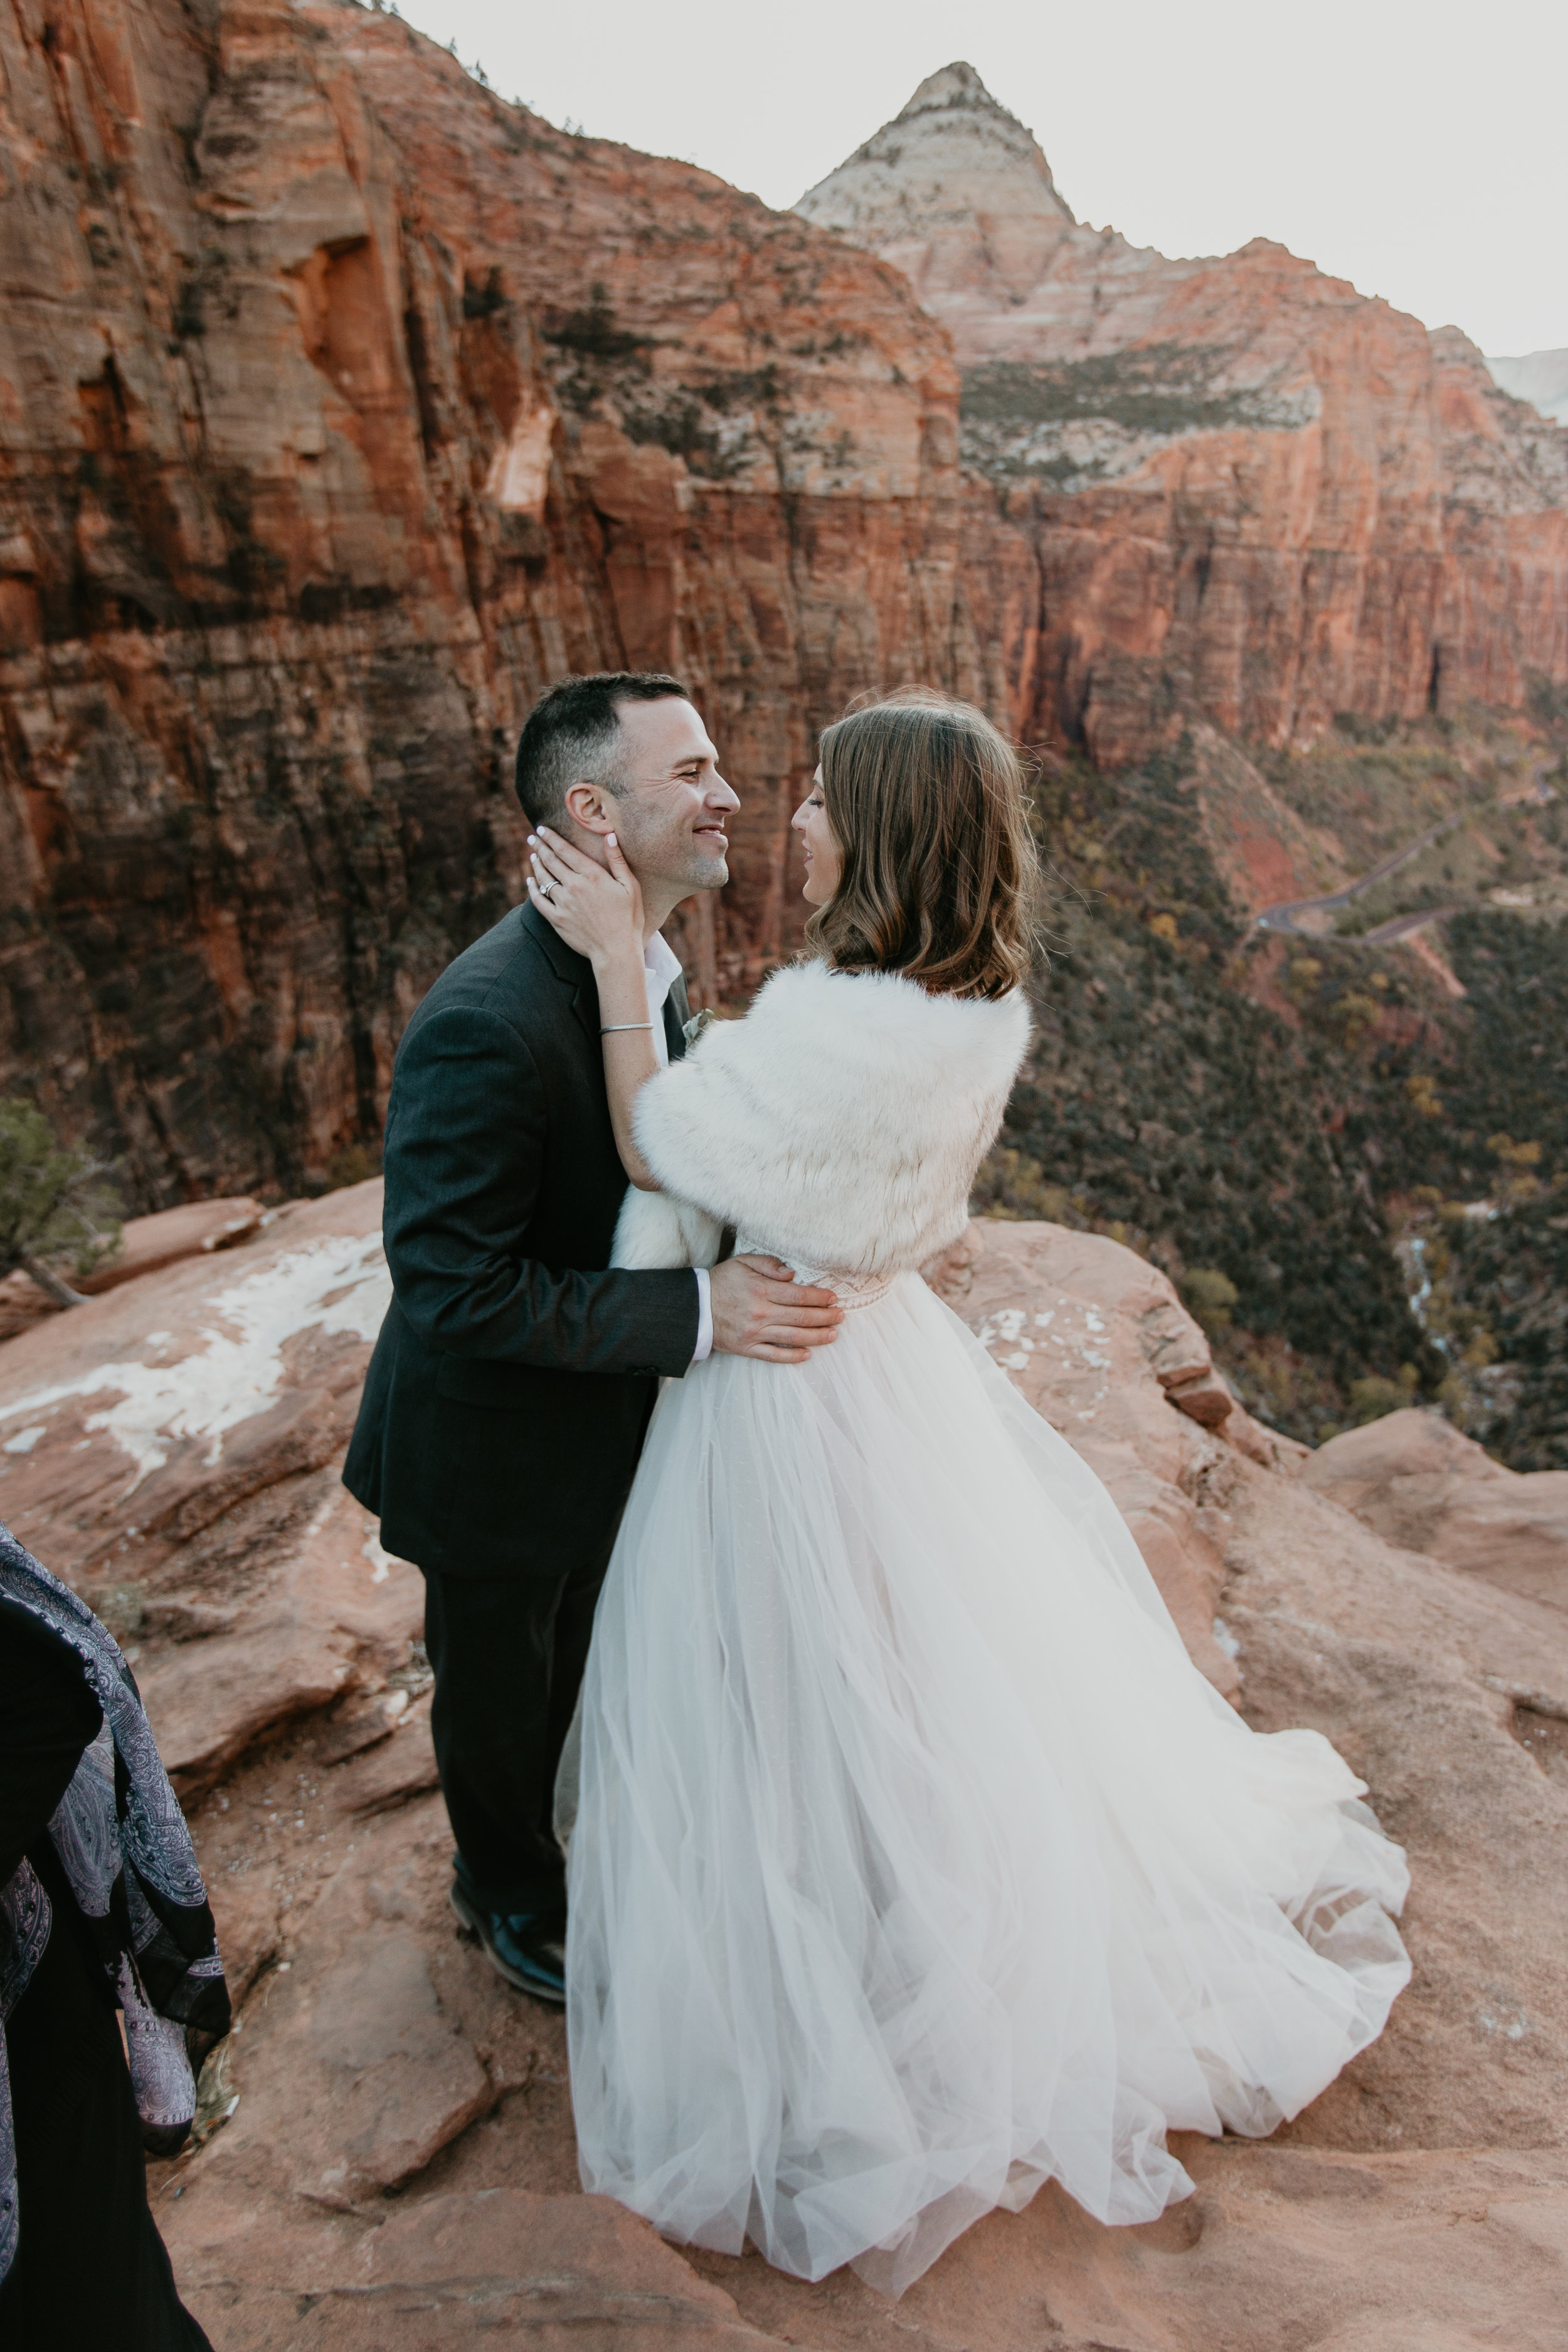 nicole-daacke-photography-zion-national-park-elopement-photographer-canyon-overlook-trail-elope-hiking-adventure-wedding-photos-fall-utah-red-rock-canyon-stgeorge-eloping-photographer-58.jpg